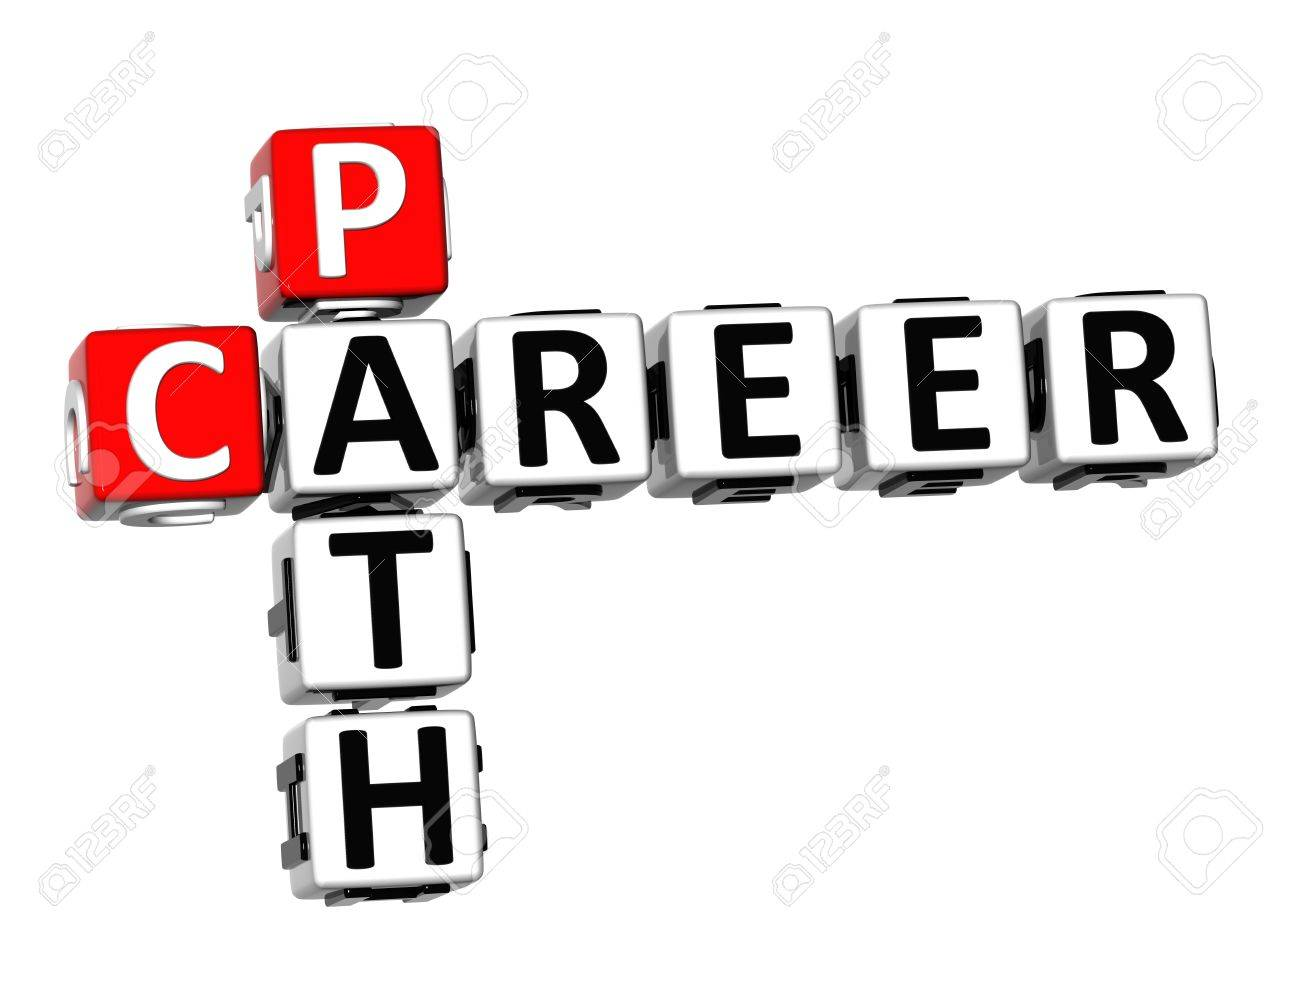 career plan your career stock photos pictures royalty career plan your career 3d crossword career path on white background stock photo